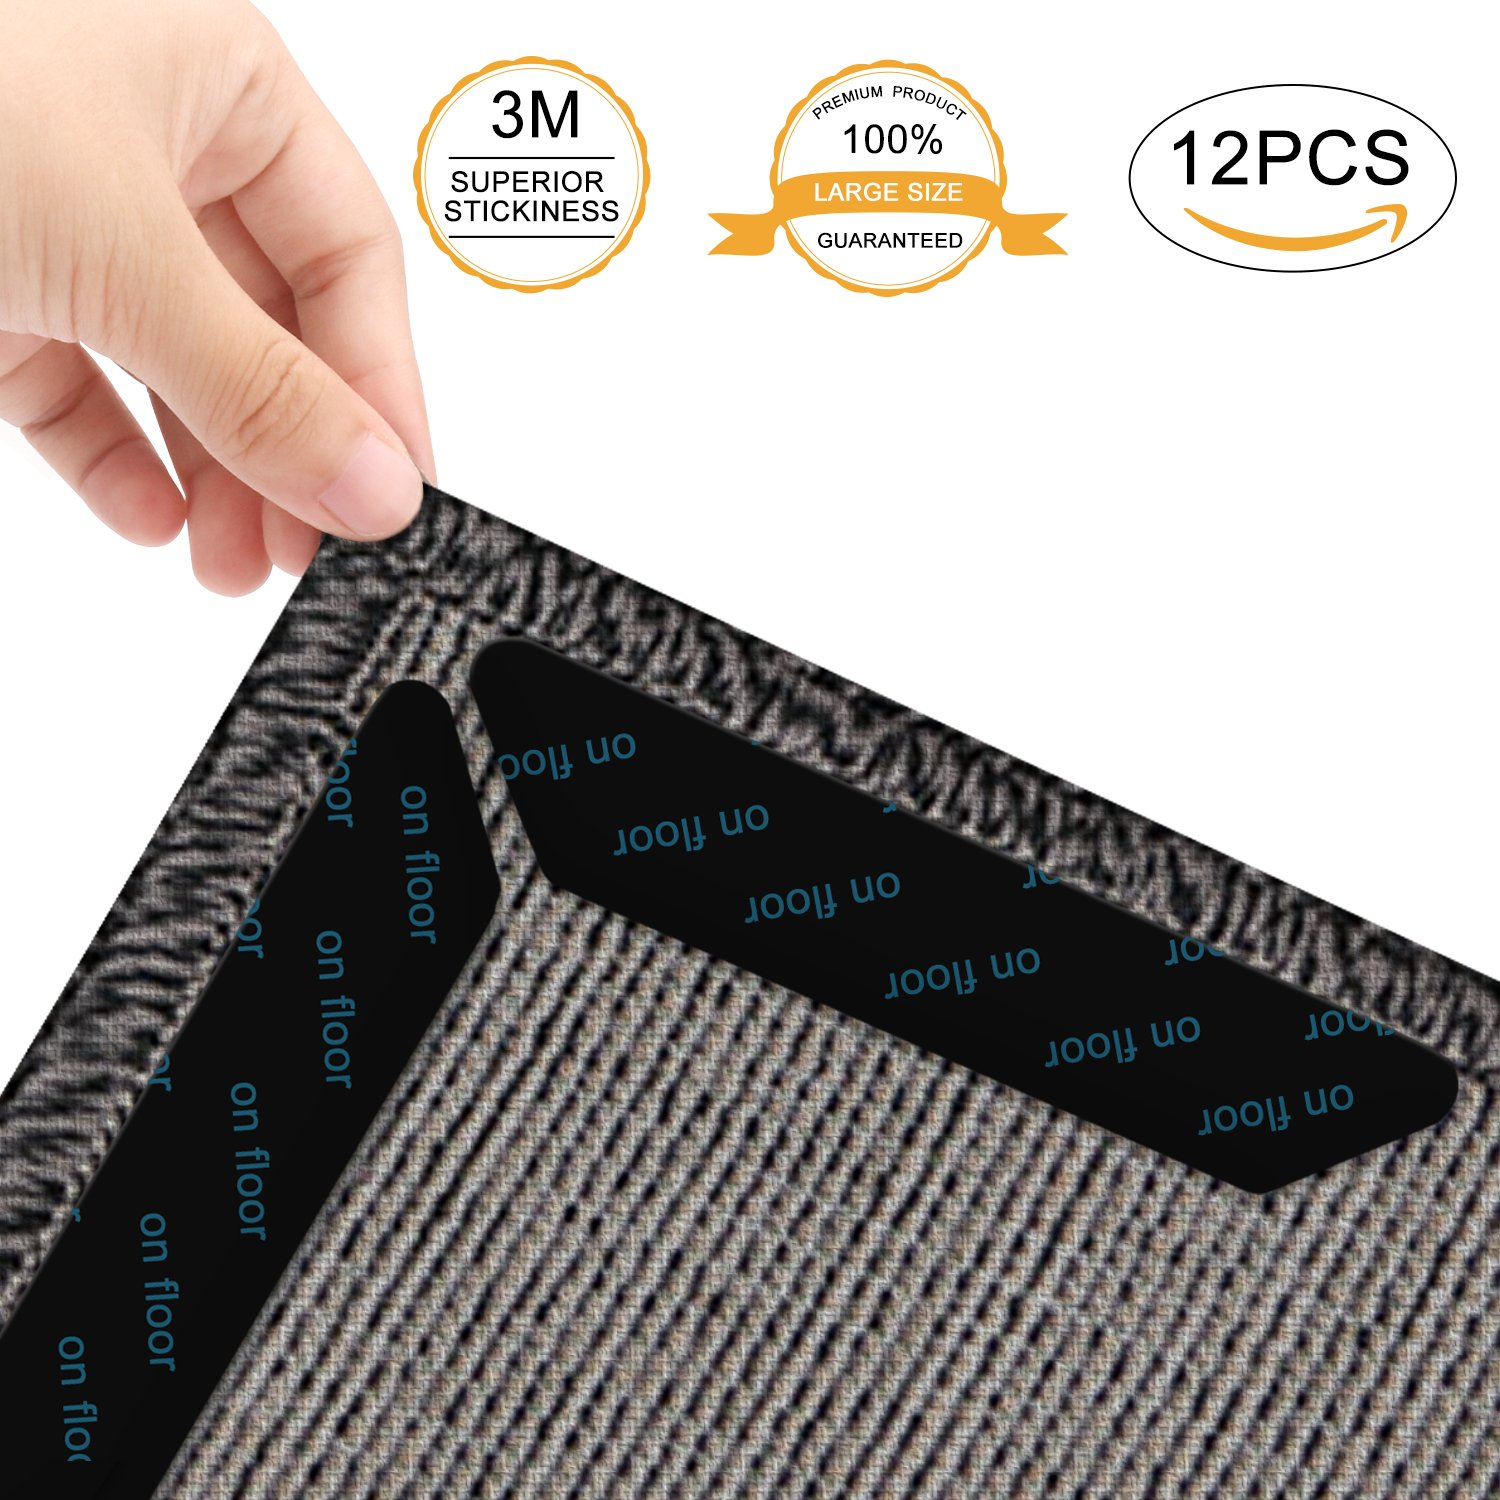 12PCS Rug Grippers, Lifelf Reusable Carpet Grippers With Anti Curling,Ideal Home Anti-slip Rug Pad Tape,Keeps Your Rug in Place and Makes Corners Edge Flat